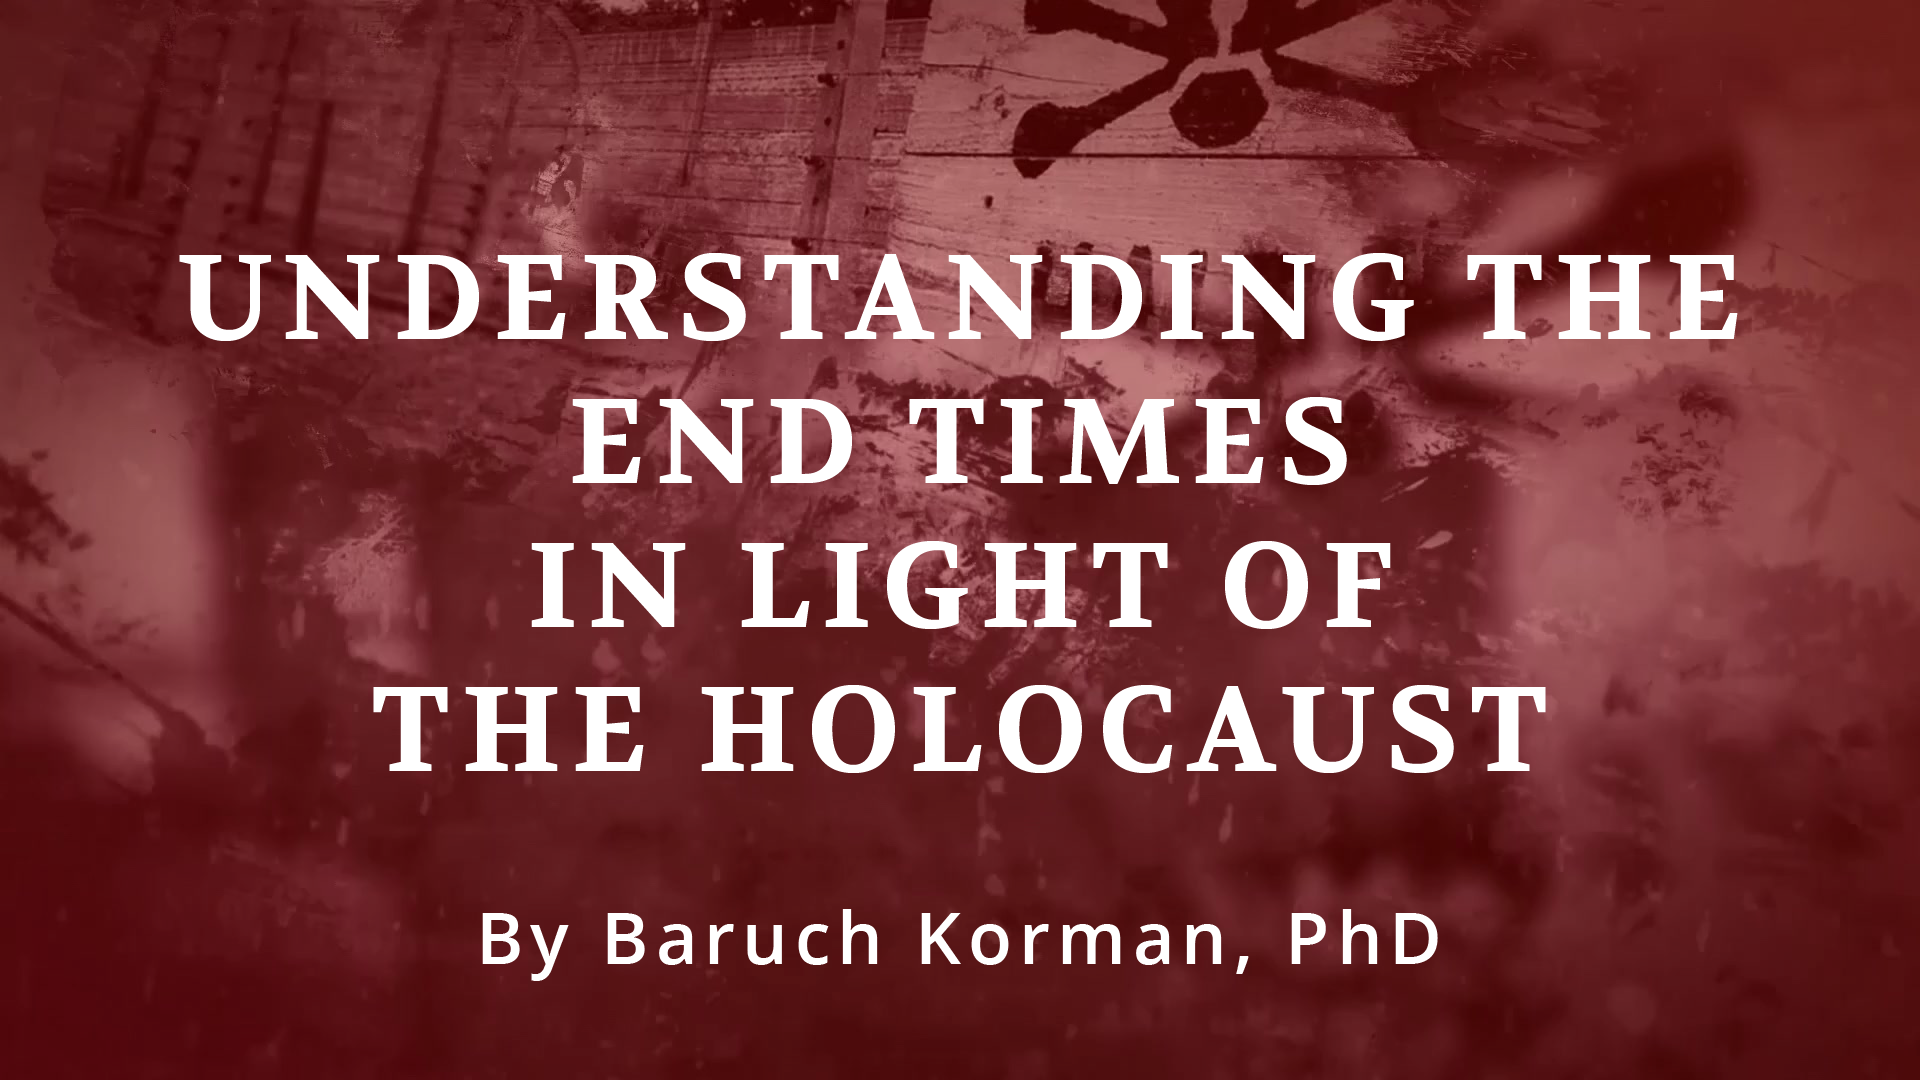 - Does the Holocaust have any prophetic significance? Was the timing of the Holocaust and the restoration of the state of Israel of any significance in the fulfillment of biblical prophecy? How, if at all, does this affect our understanding of the last days? A new 4-part video study series by Dr. Baruch Korman answers these questions as well as providing scriptural based truth behind God's word. Dr. Baruch walks us through historical events to reveal if the Holocaust was unique and if it gives us a paradigm of what will take place in the future, the last days. Are you prepared?